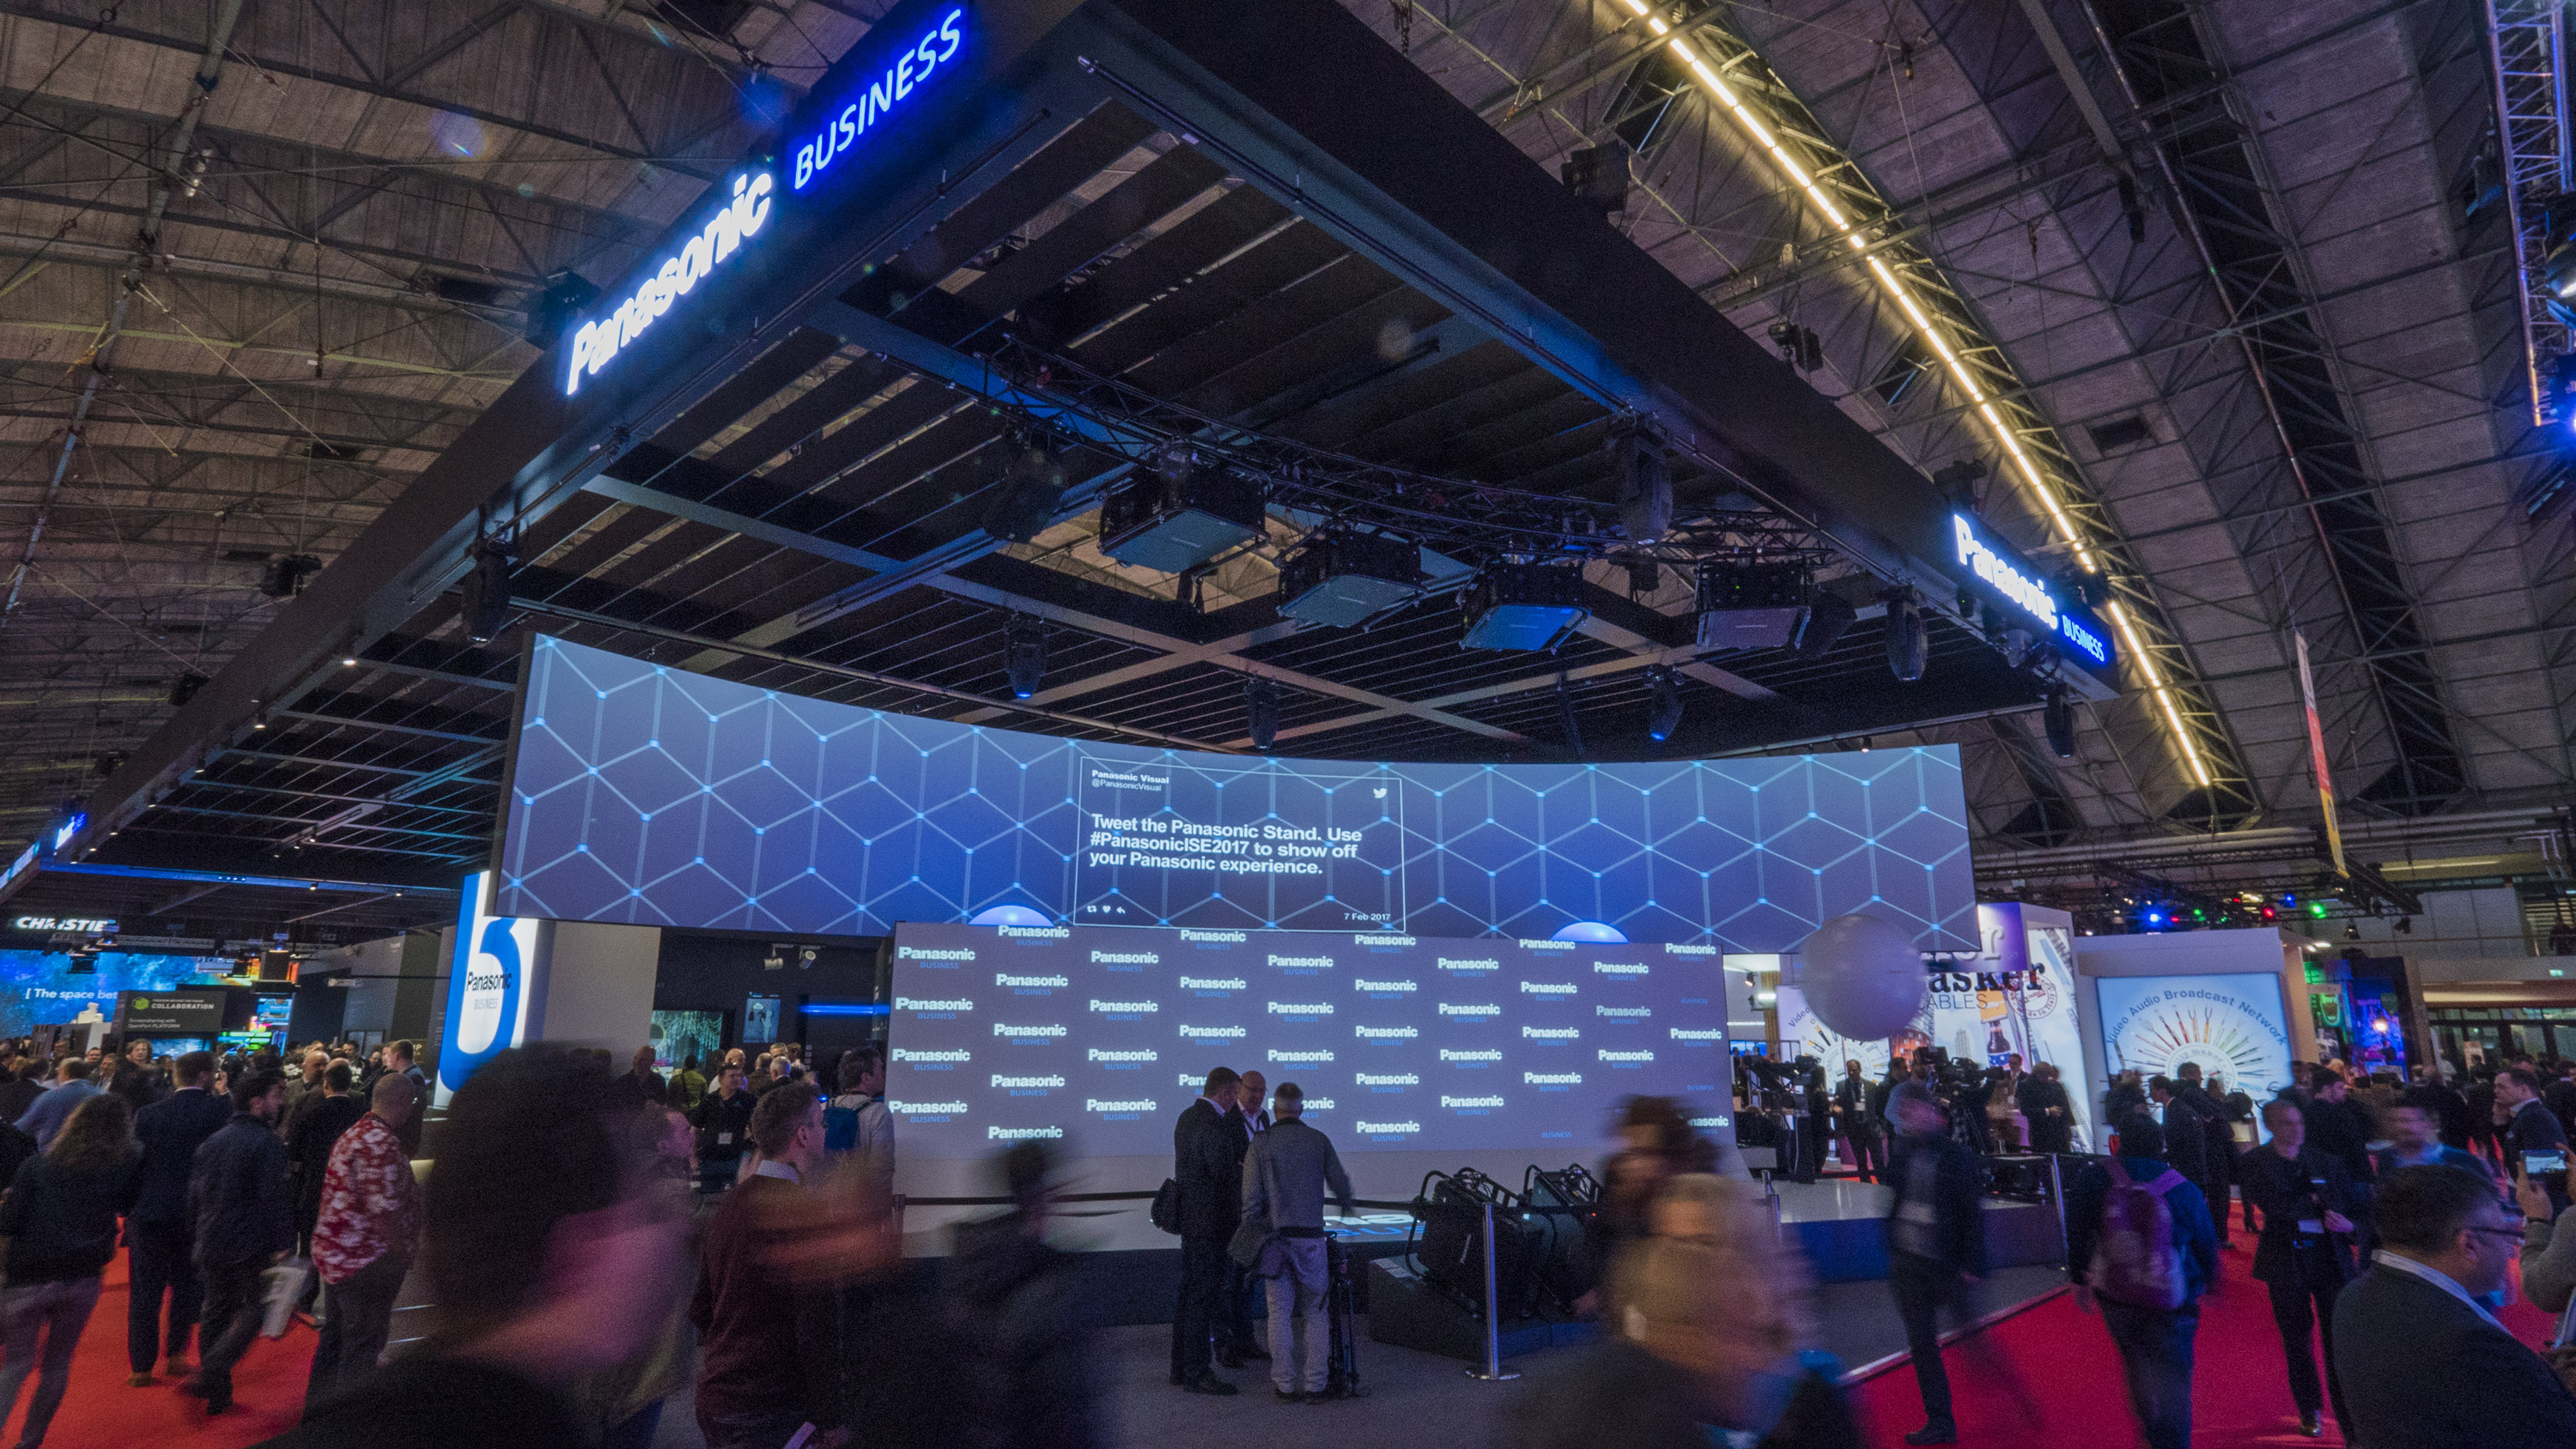 D Hologram Exhibition : Panasonic set to create a holographic u cshowstopperu d at ise